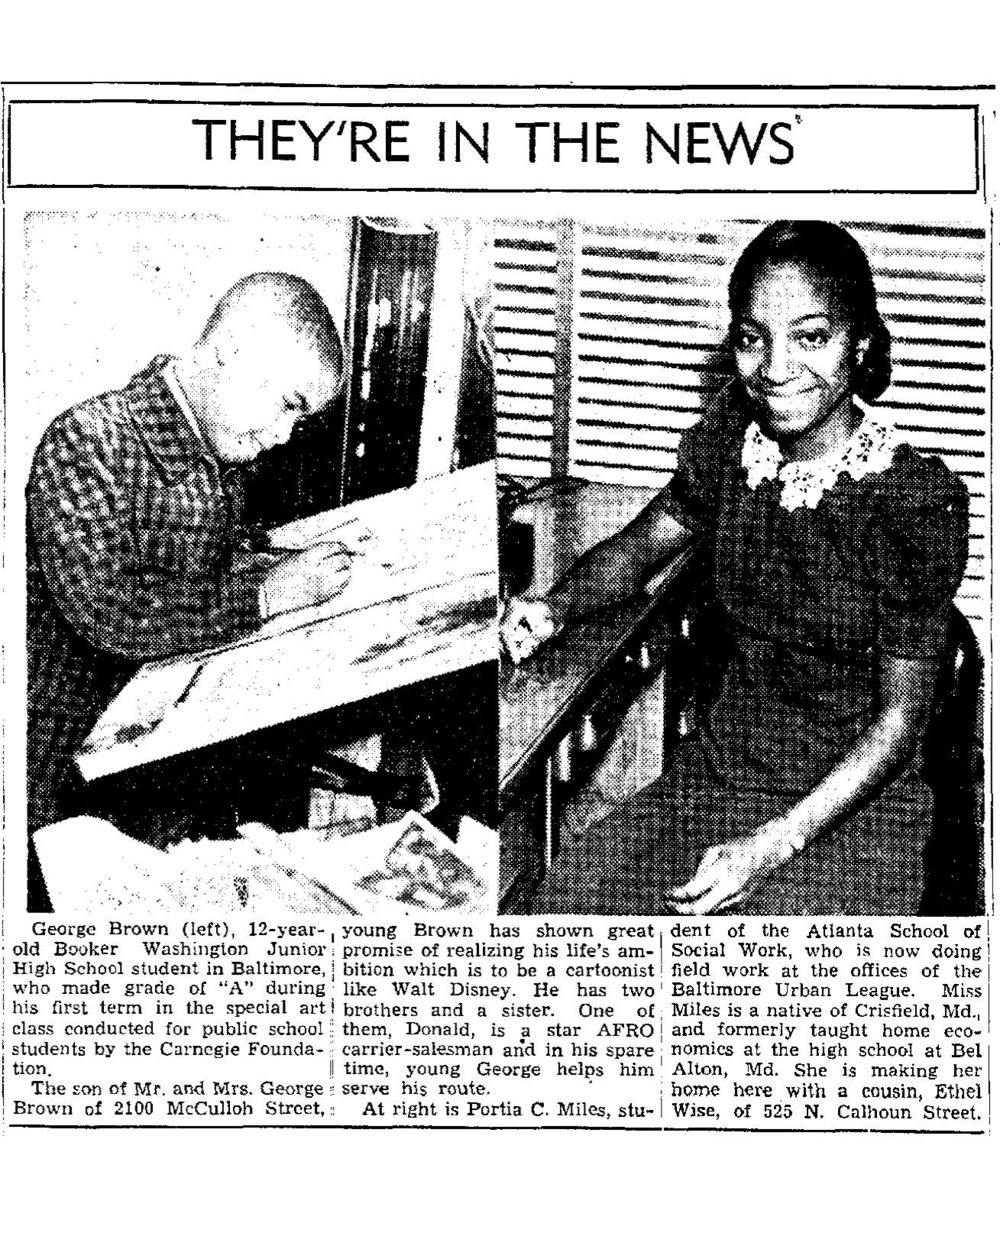 1941-2-22-THEY'RE_IN_THE_NEWS'.jpg